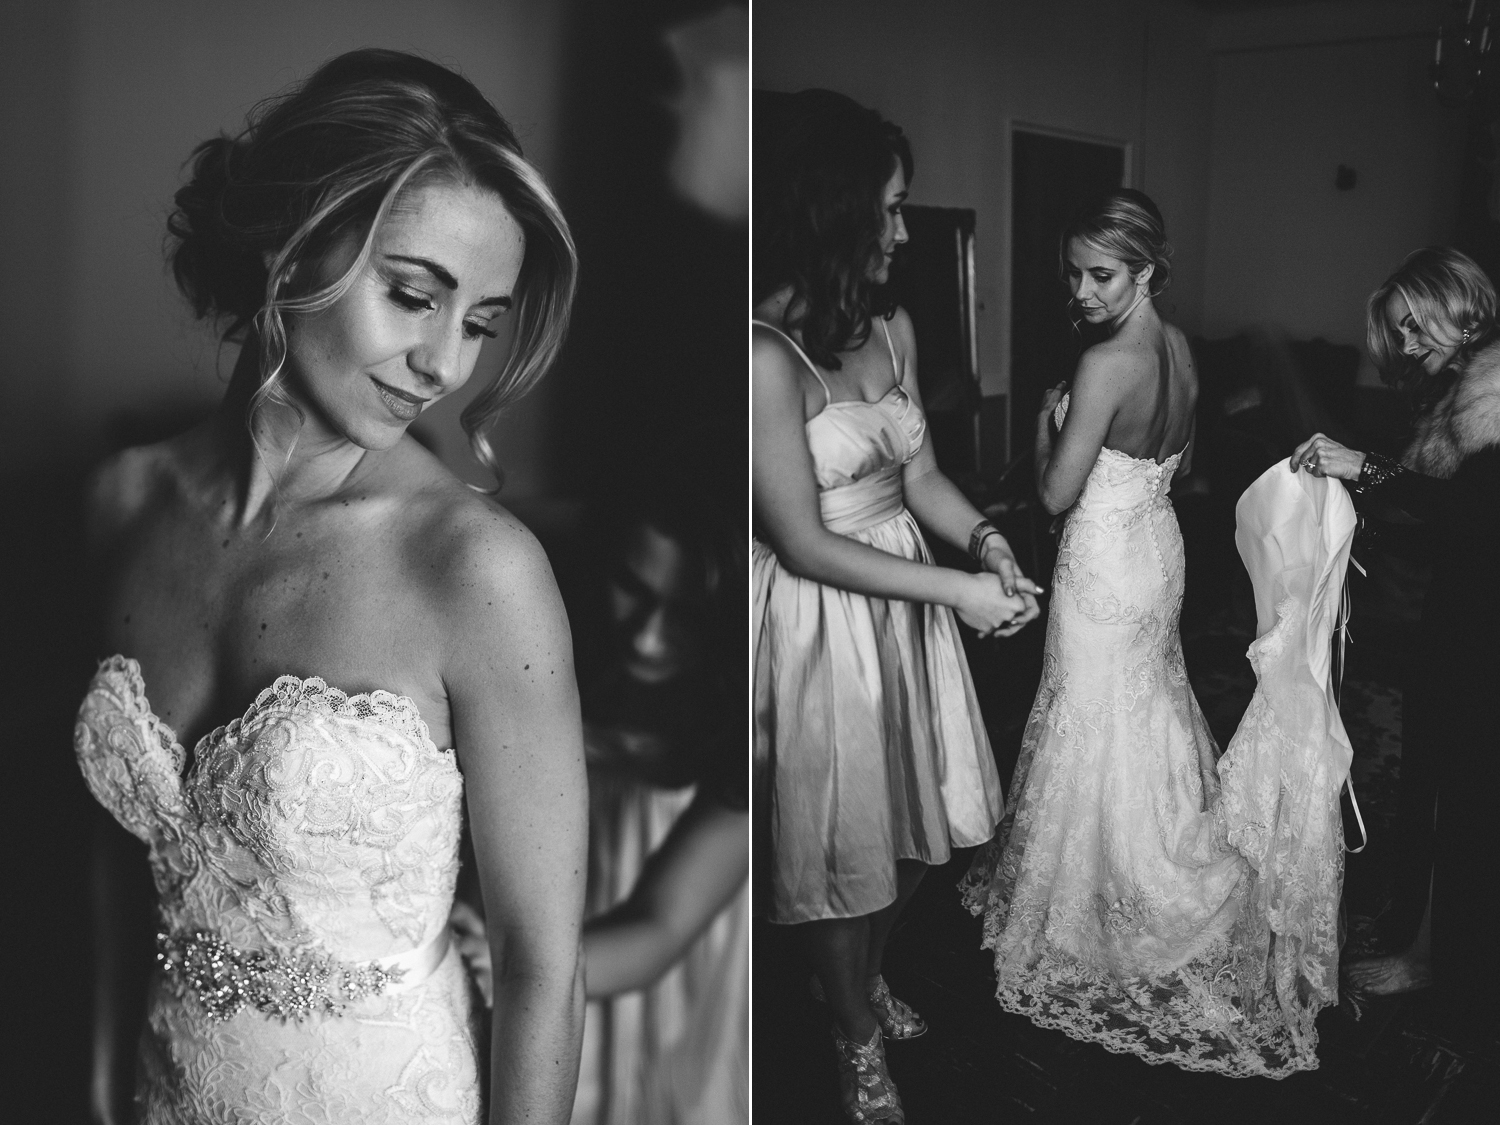 beautiful black and white portrait of bride getting ready